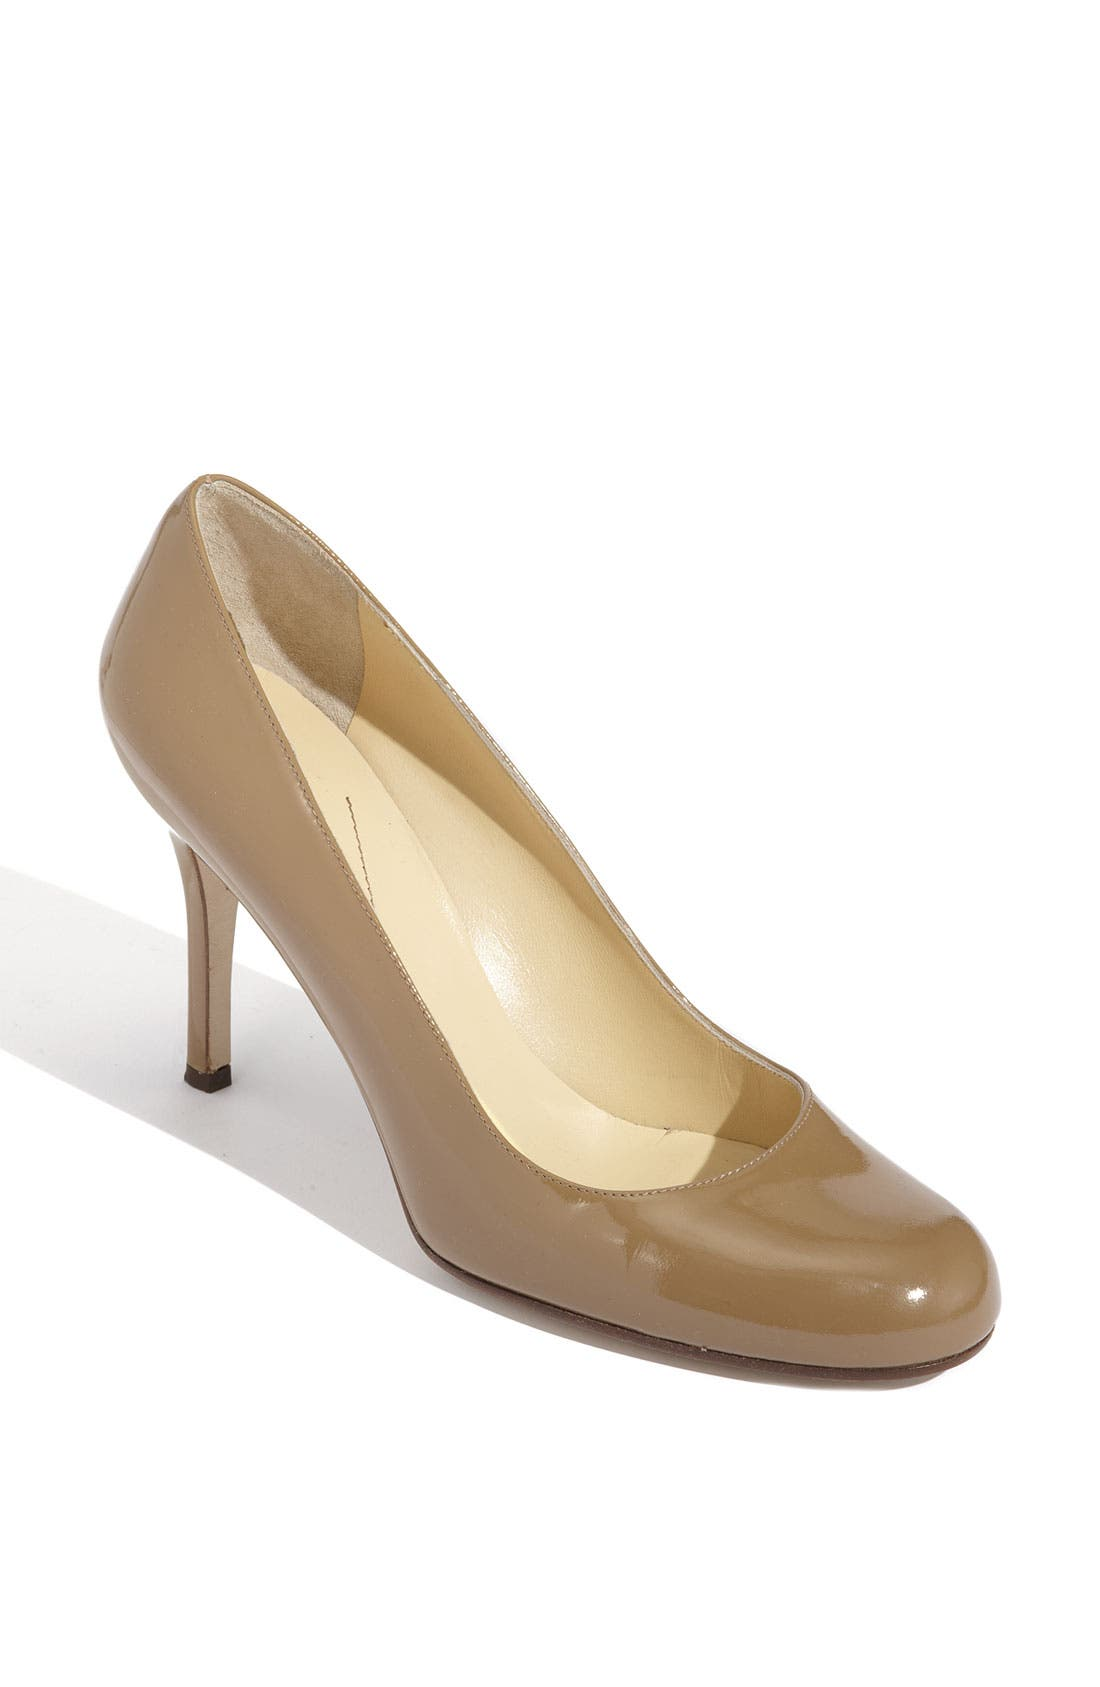 Main Image - kate spade new york 'karolina' pump